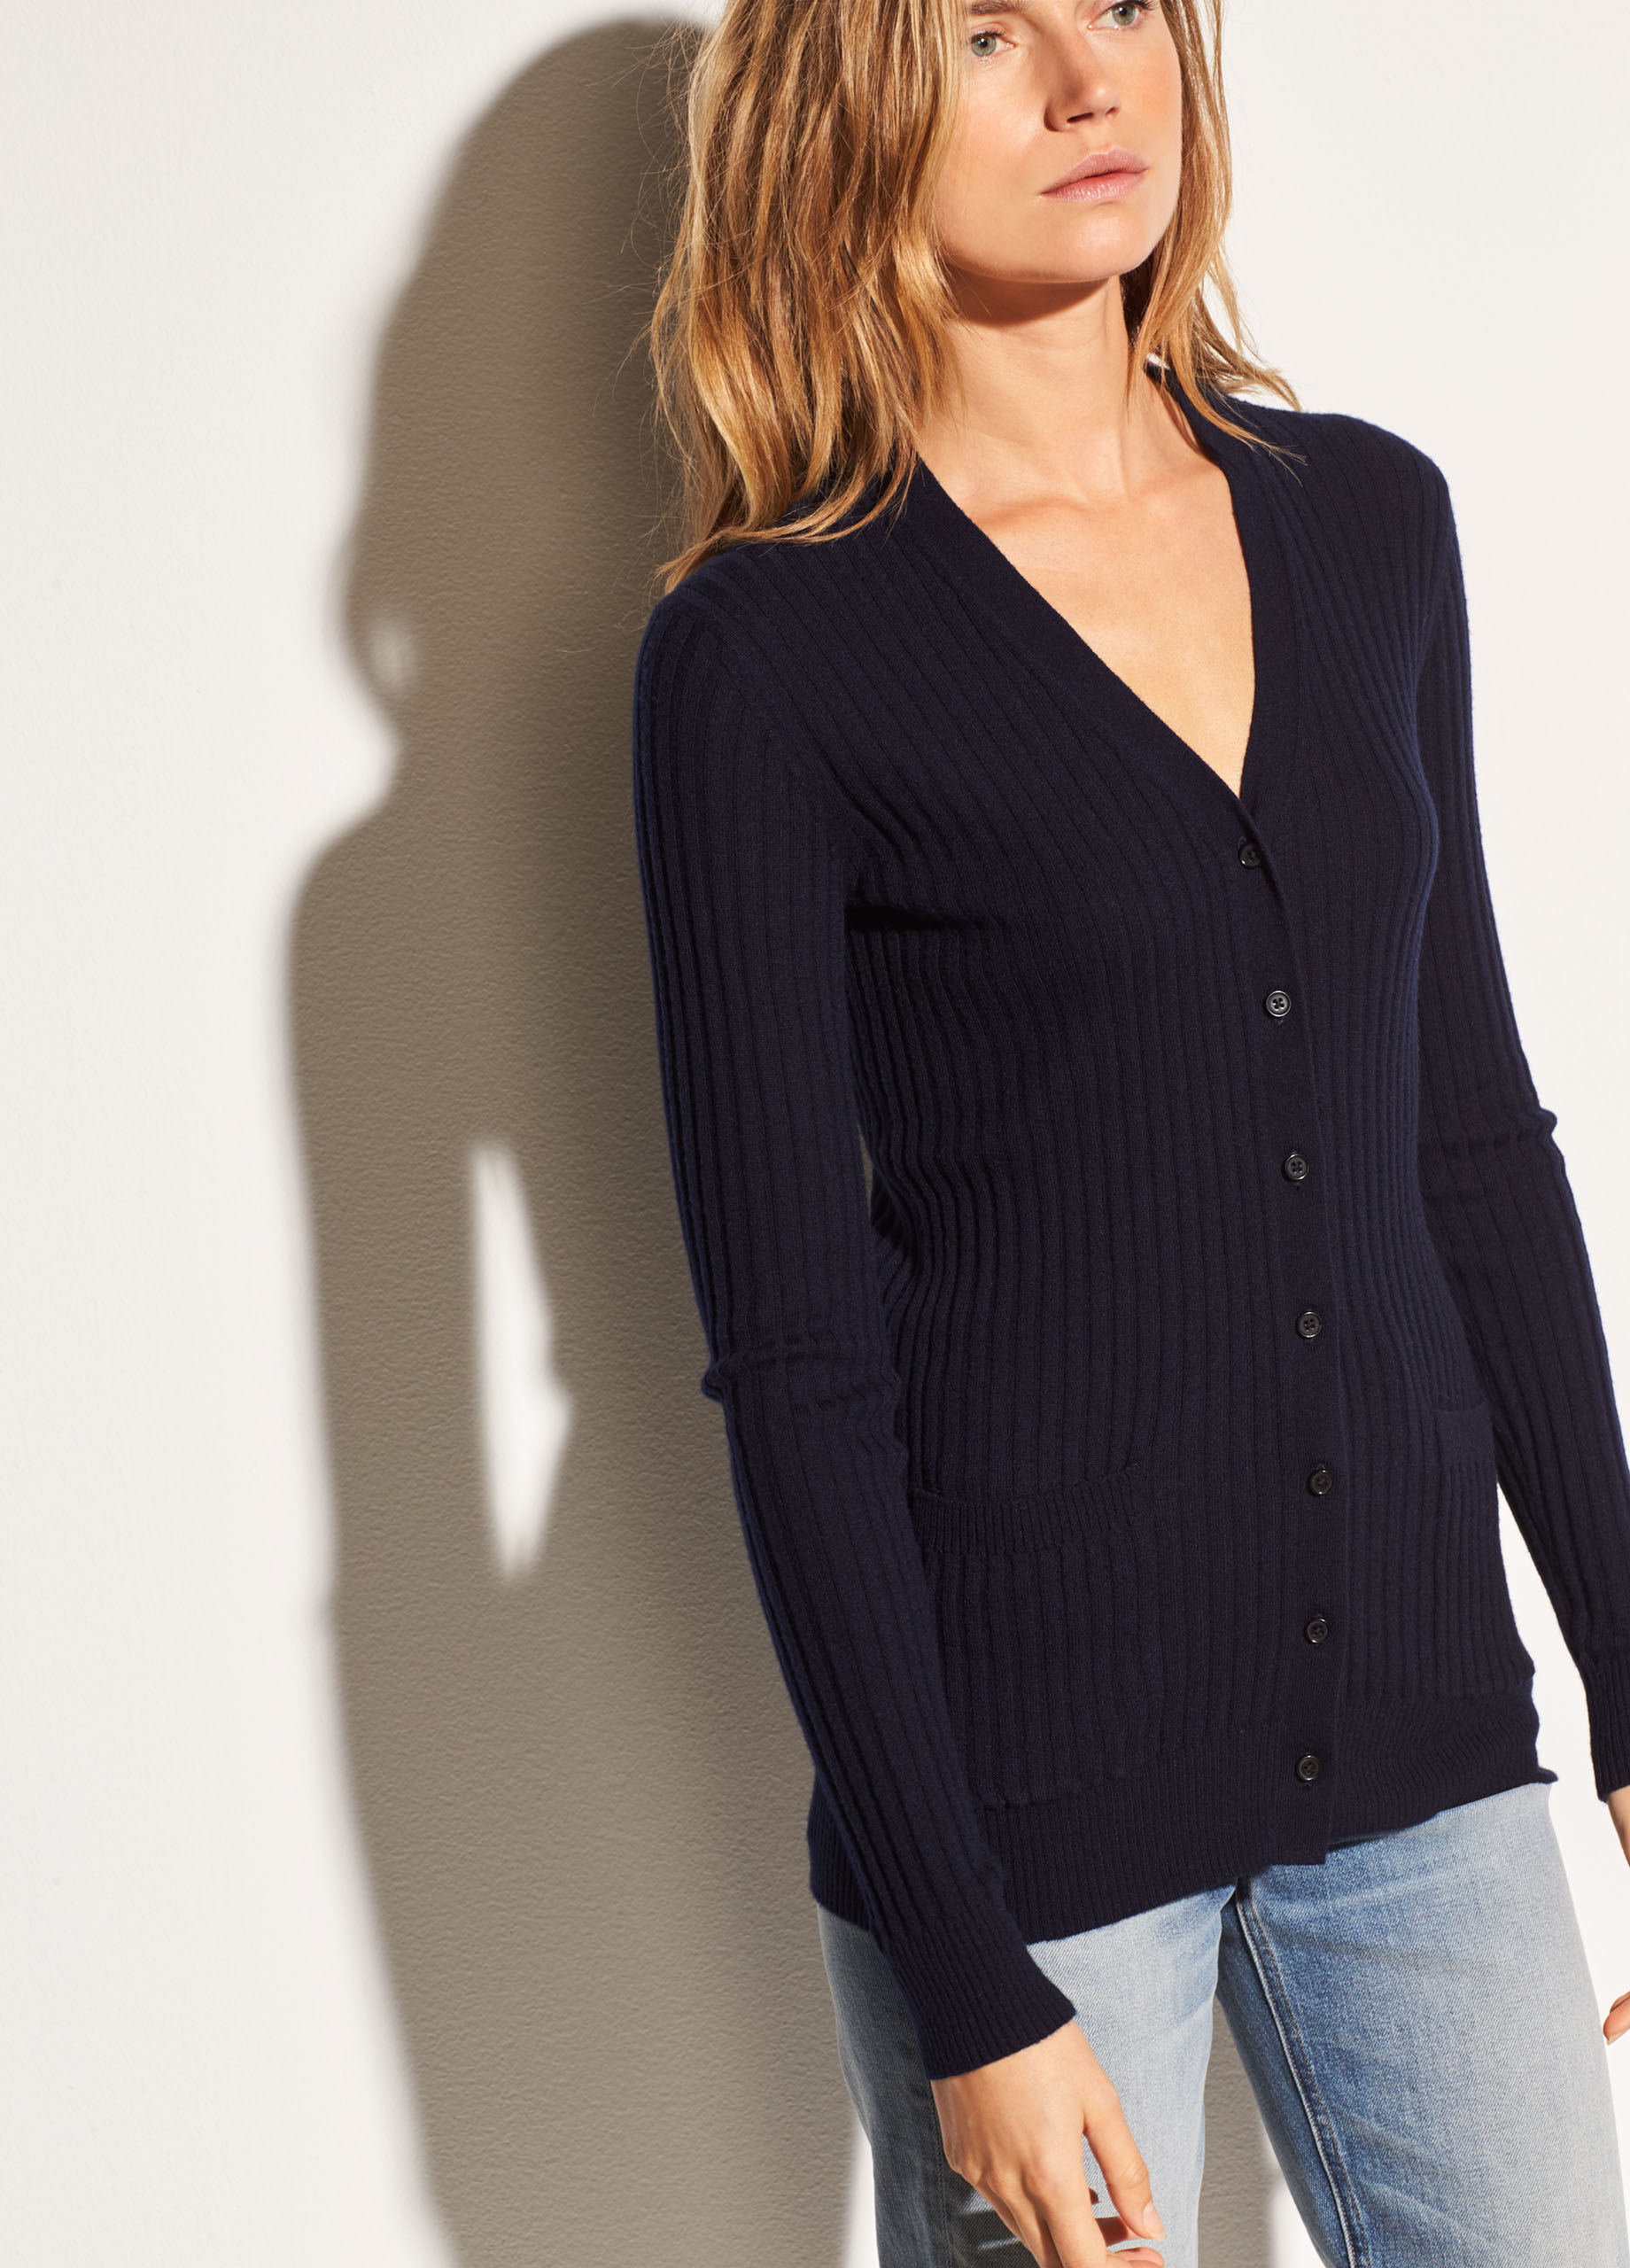 Pay With Visa Sale Online Cheap Sale Get Authentic Rib Skinny Cashmere Cardigan Sweater Vince TAxm1h5asc